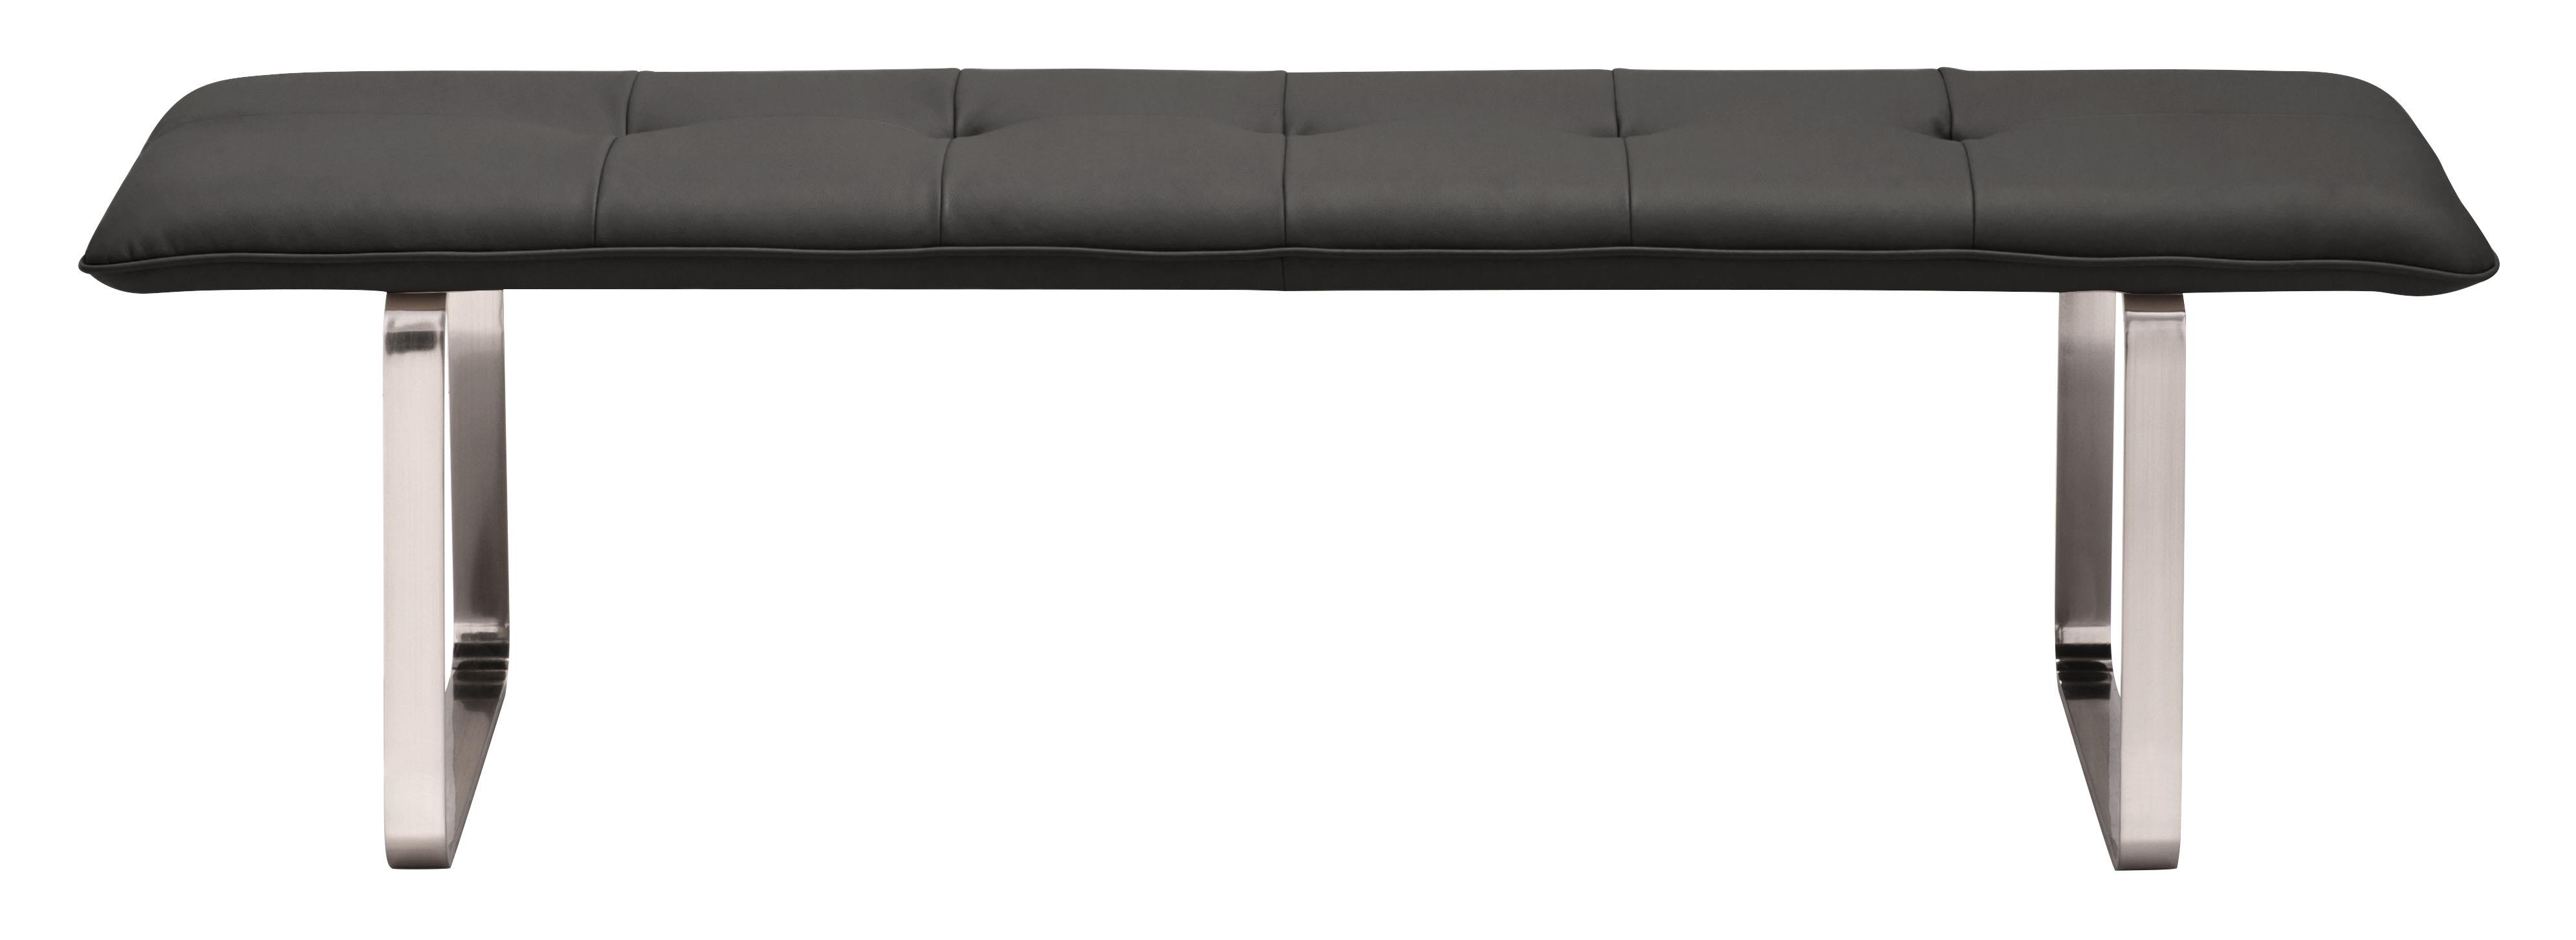 Zuo Cartierville Bench - Item Number: 500177